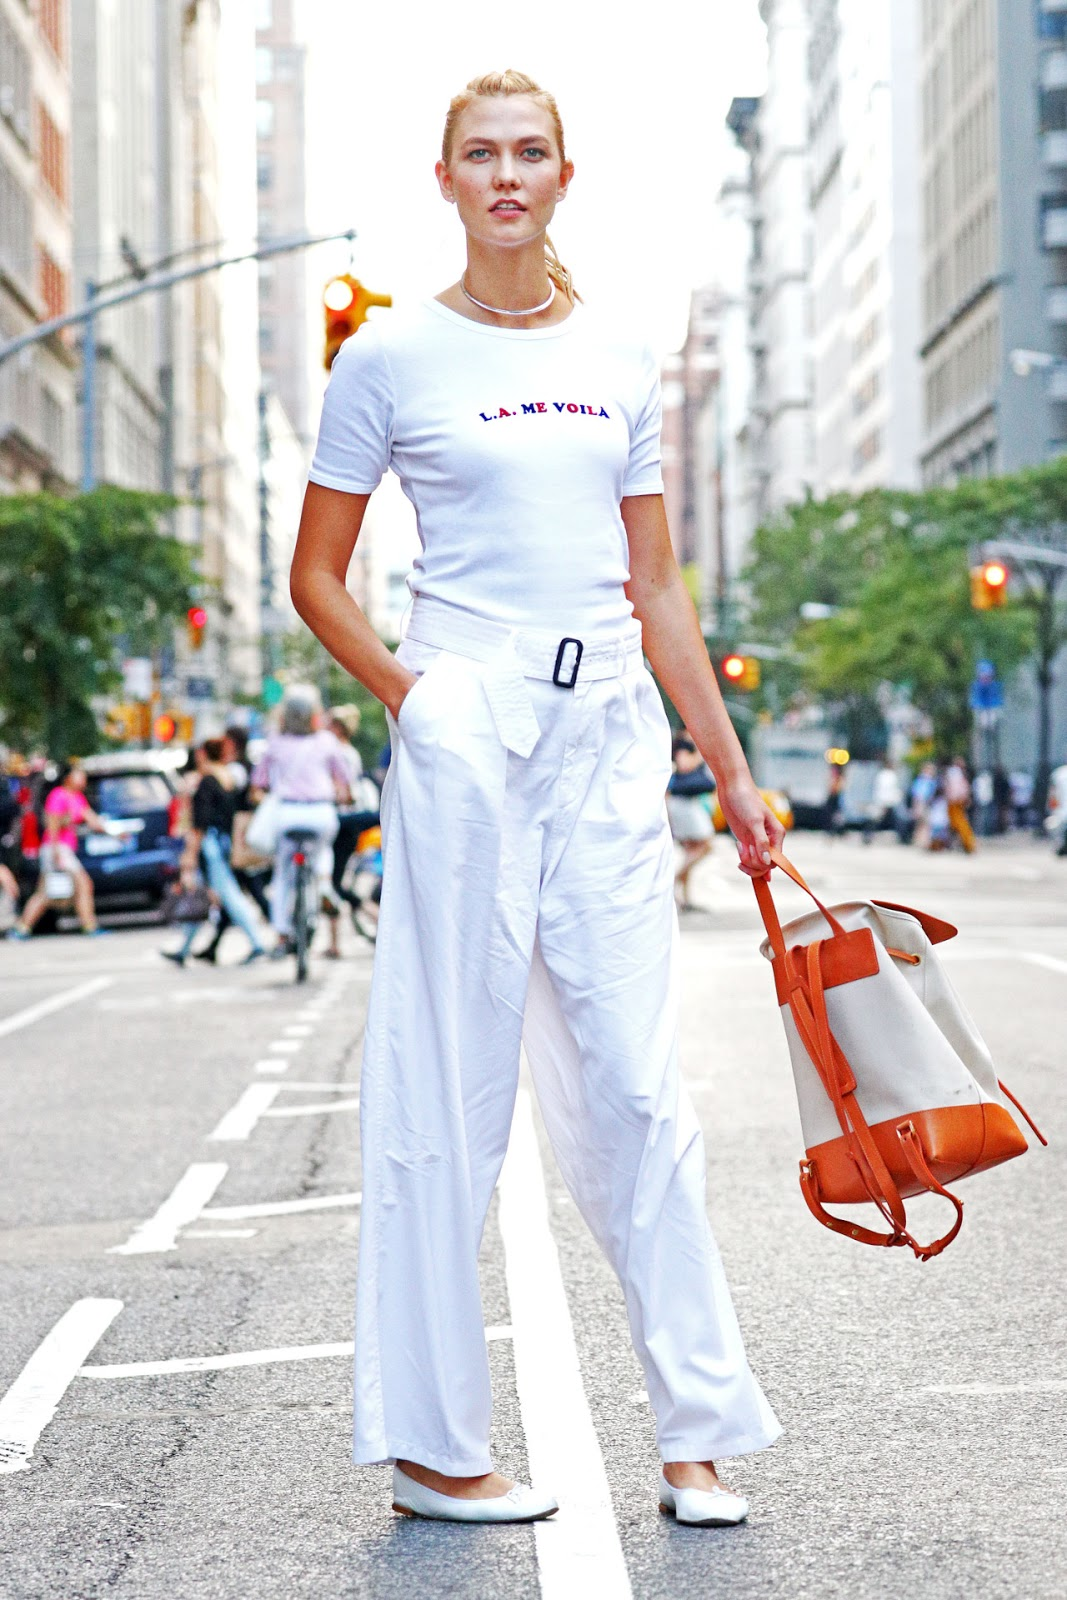 Karlie Kloss Wears All White in NYC